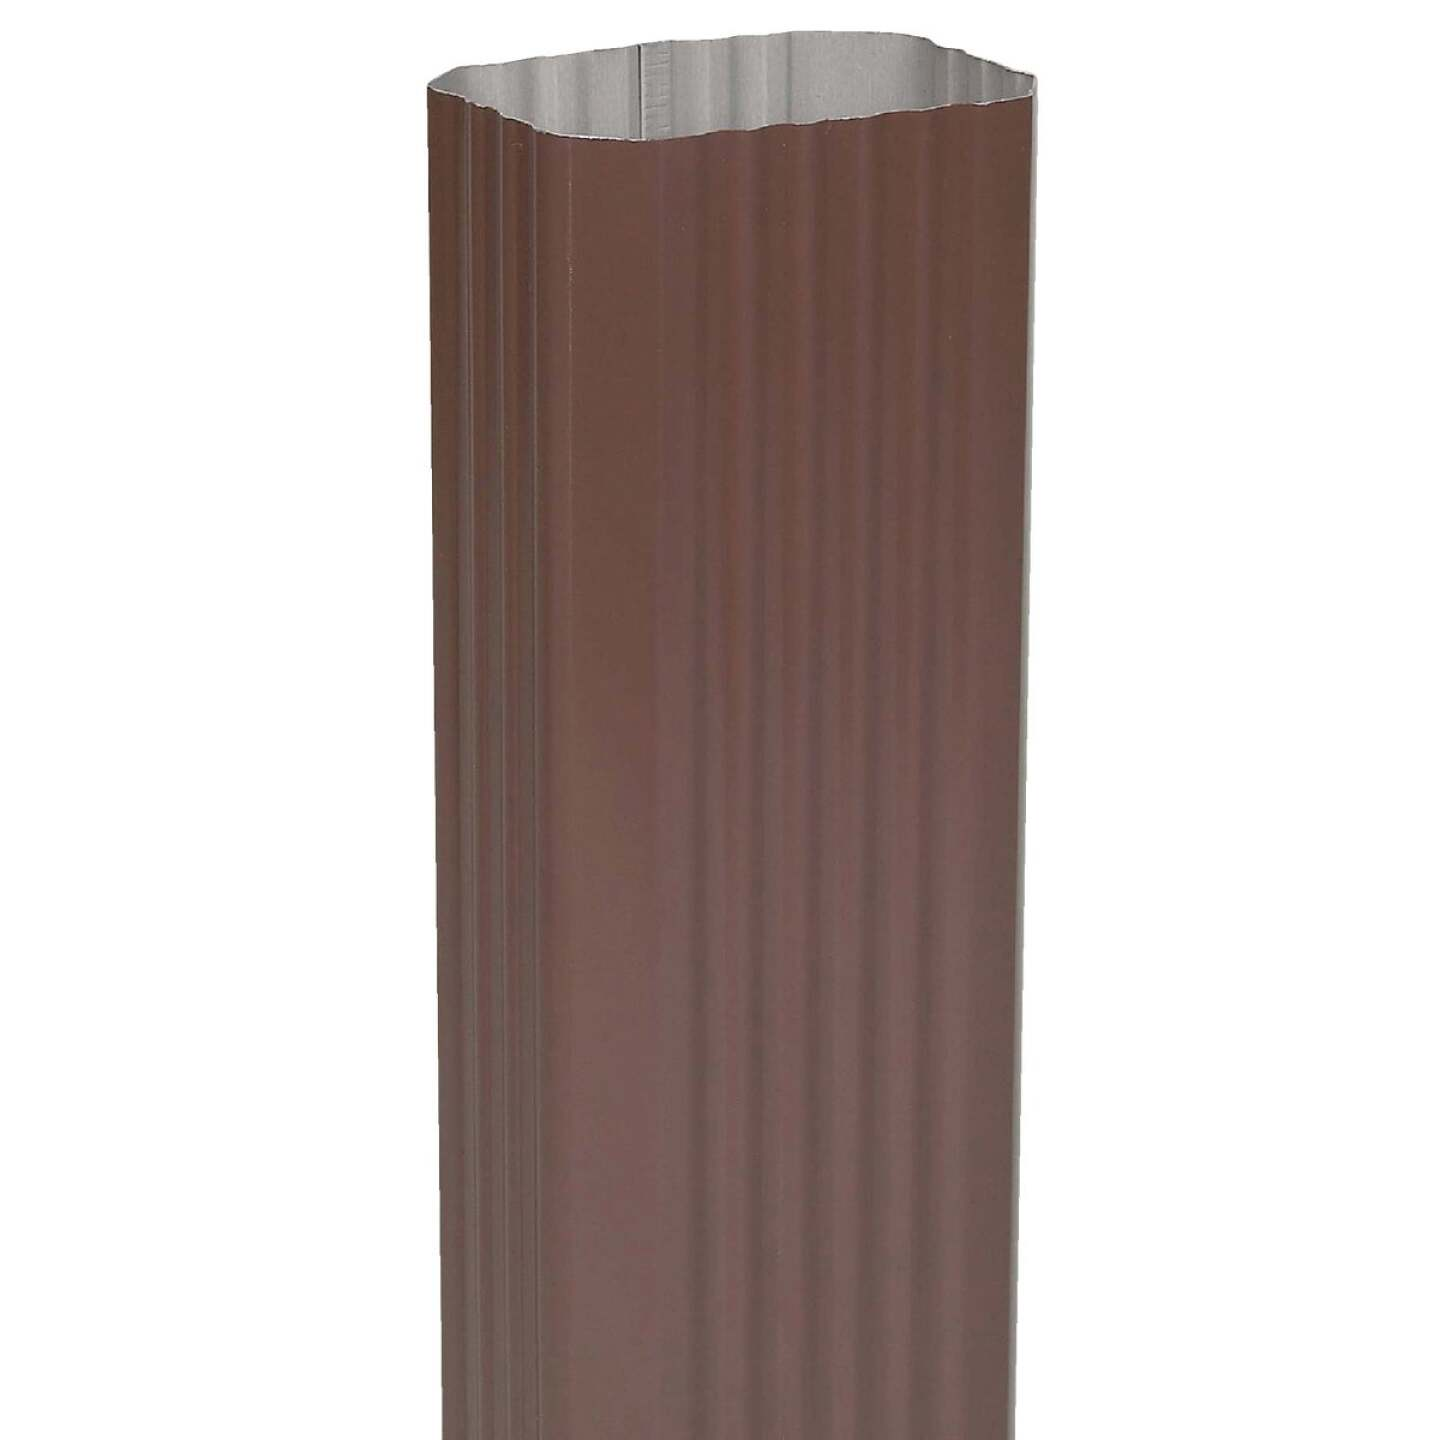 Spectra Metals 3 In. x 4 In. Brown Aluminum Downspout Image 1